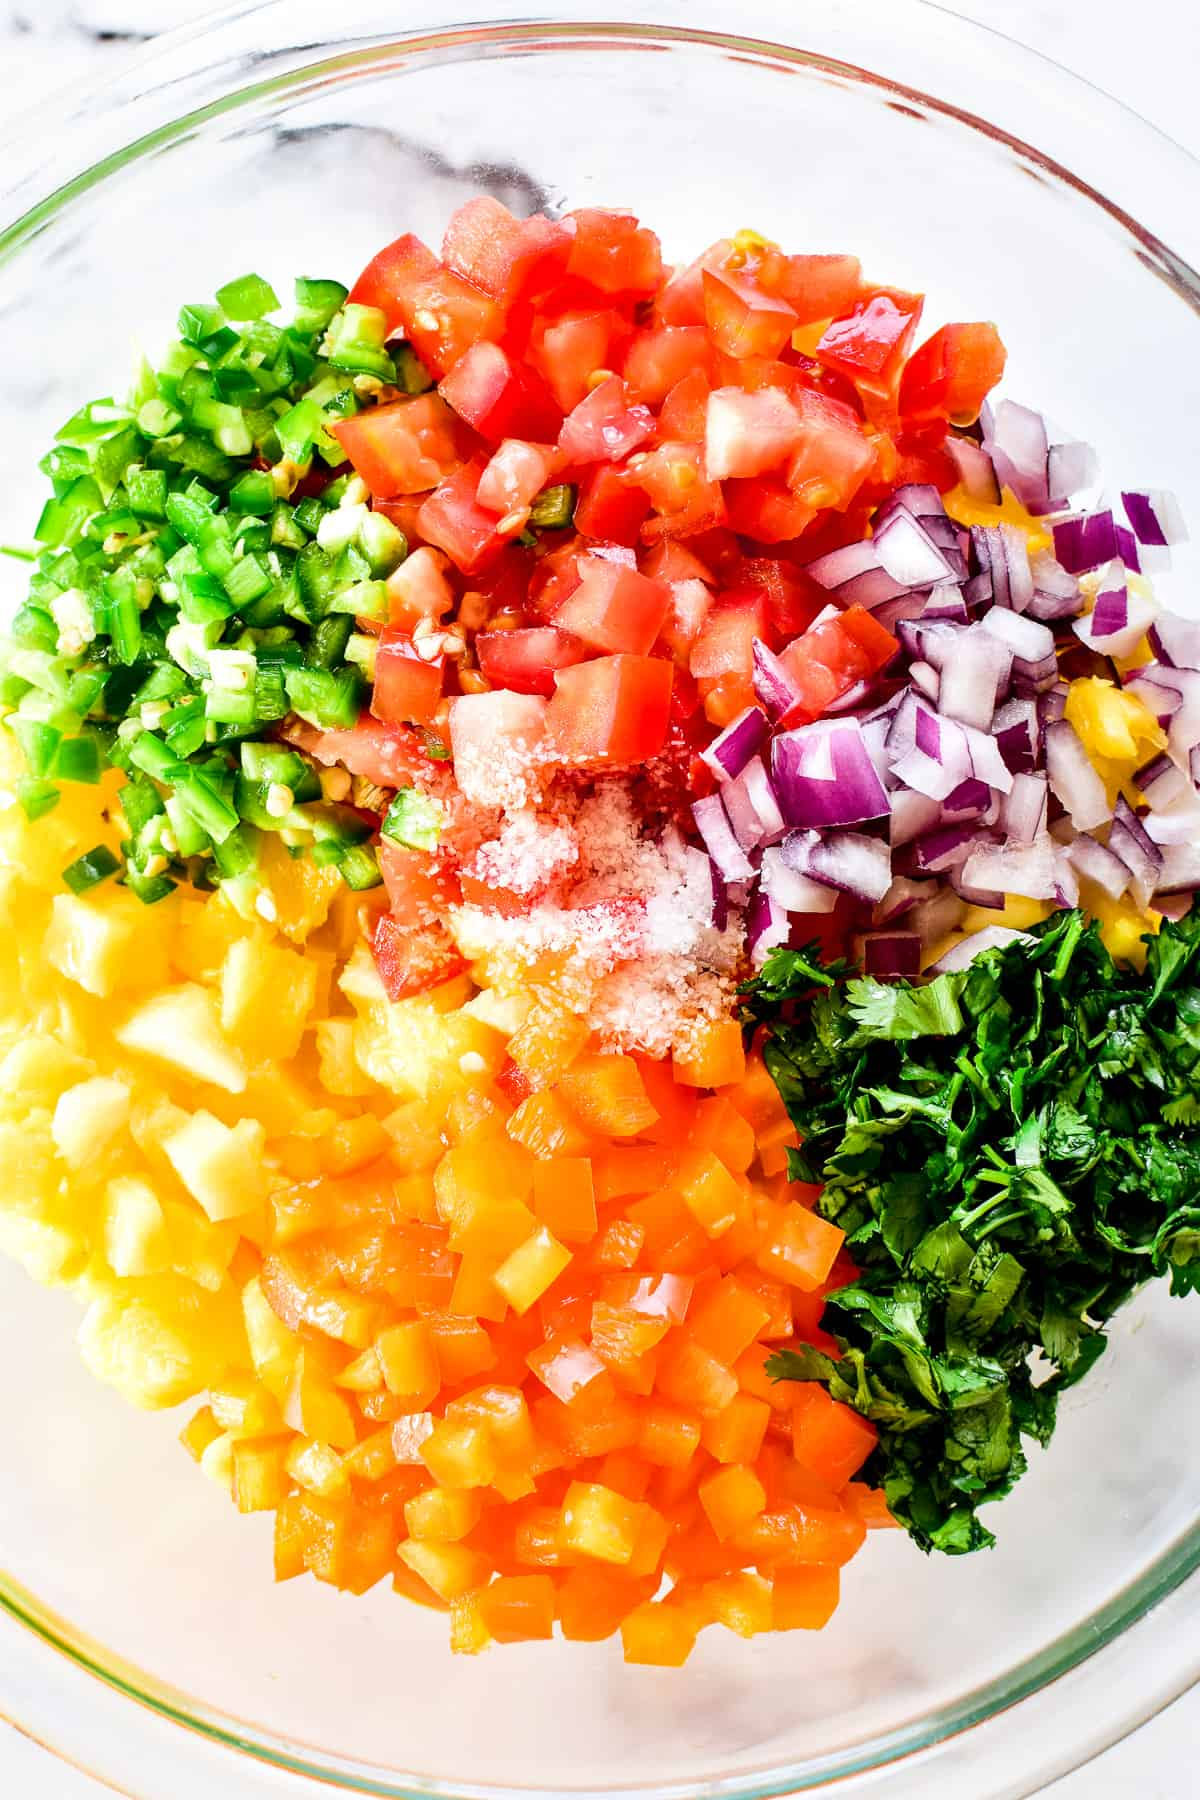 Pineapple Salsa ingredients layered in mixing bowl